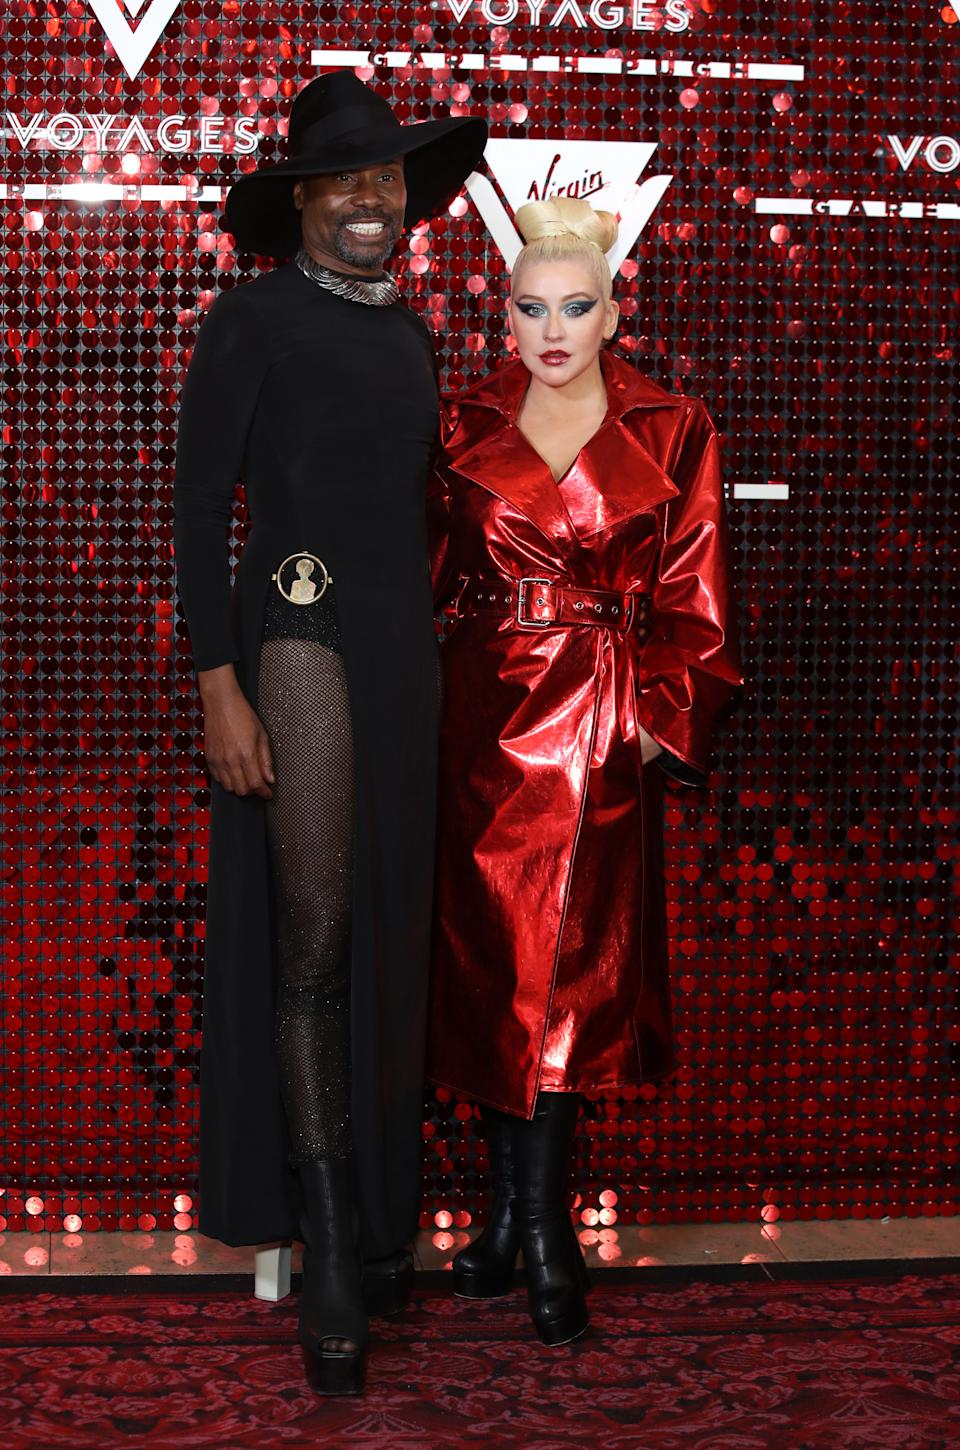 Billy Porter and Christina Aguilera attended the launch of Sir Richard Branson and Gareth Pugh's Virgin Cruise capsule collection on Sunday night [Photo: Getty Images]